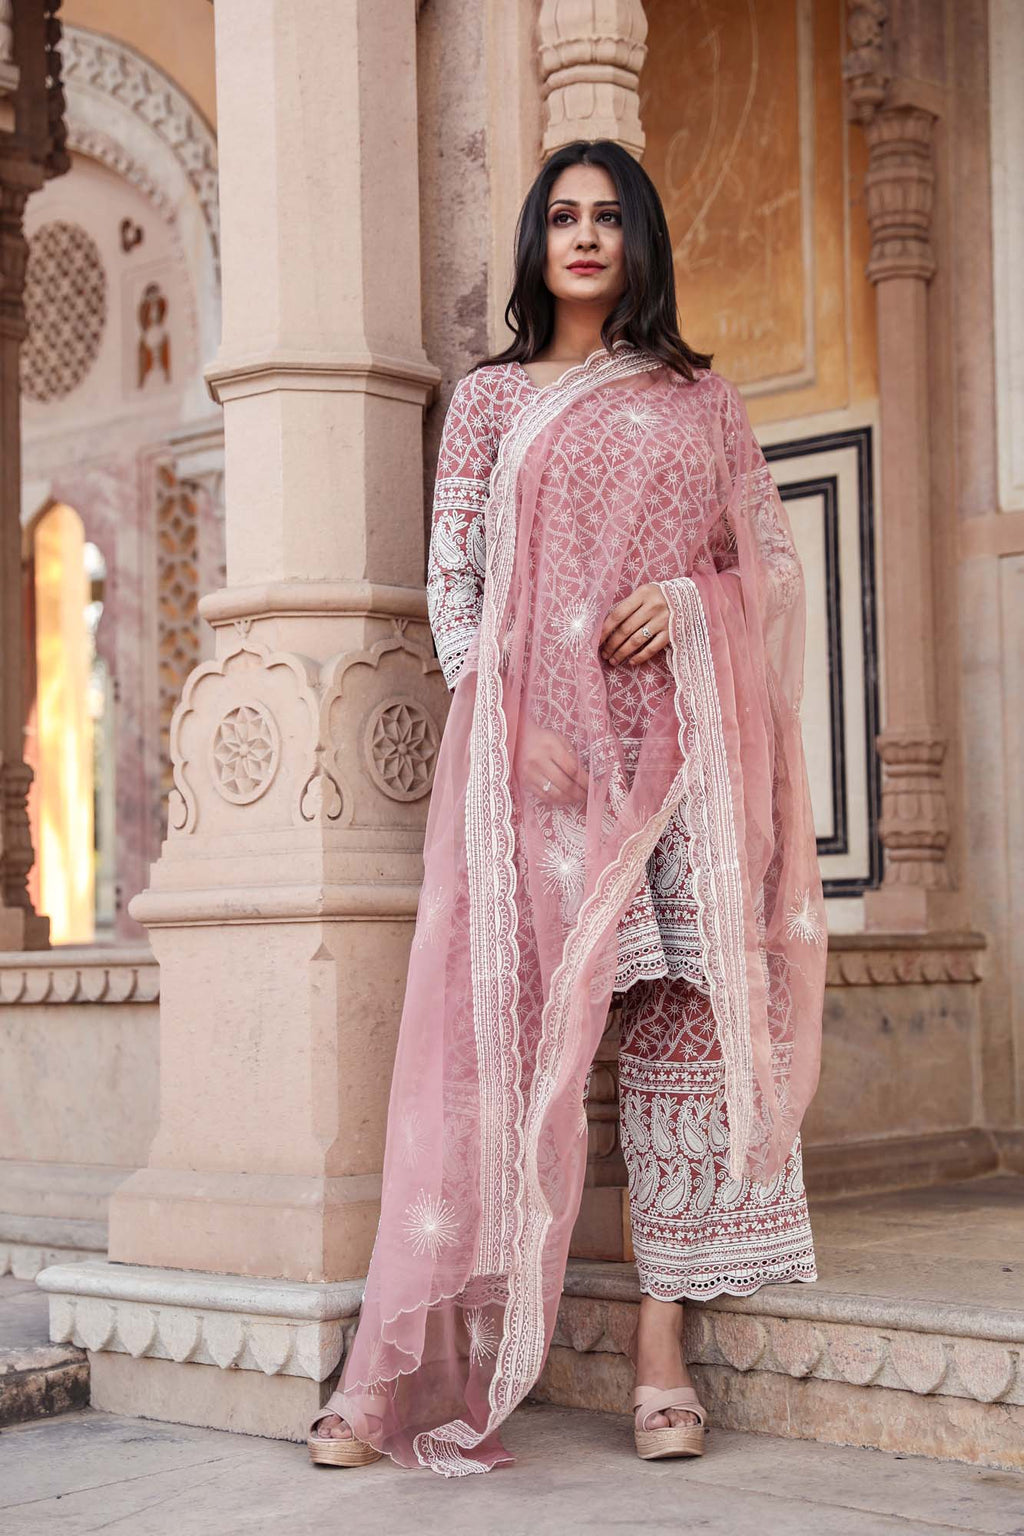 Hina Pink Chikan Embroidered Salwar Suit Set - Riviera Closet